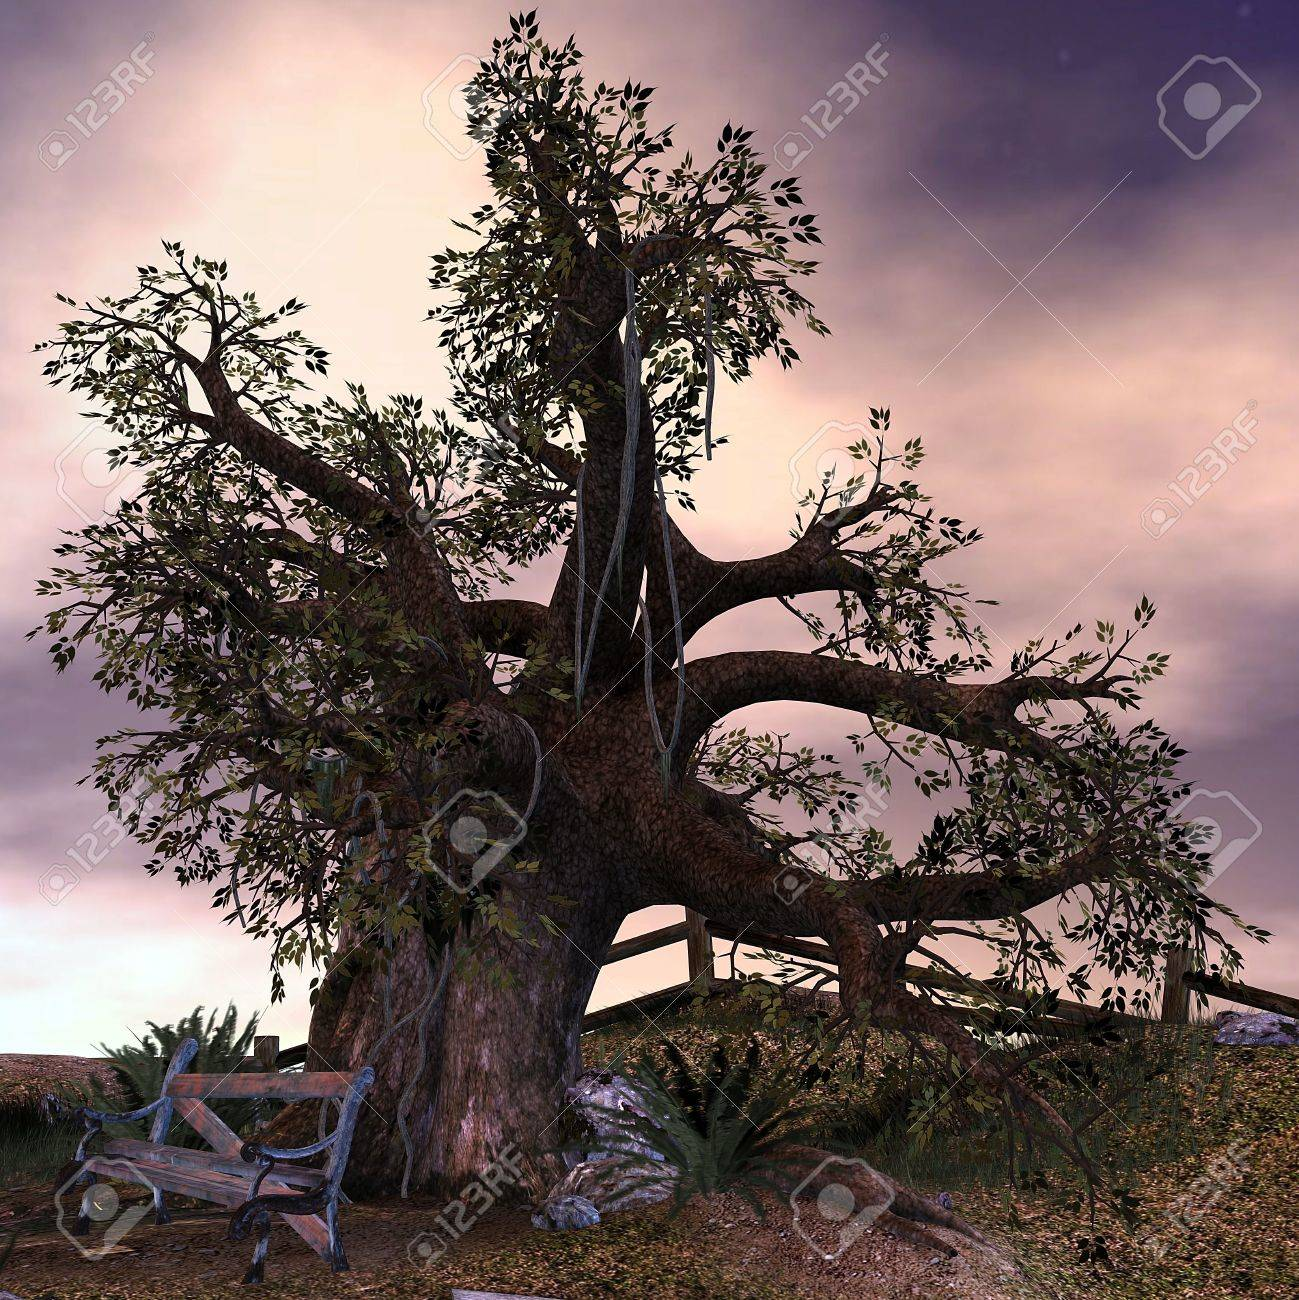 3d rendering an old tree at an abandoned place as illustration stock illustration 8053520